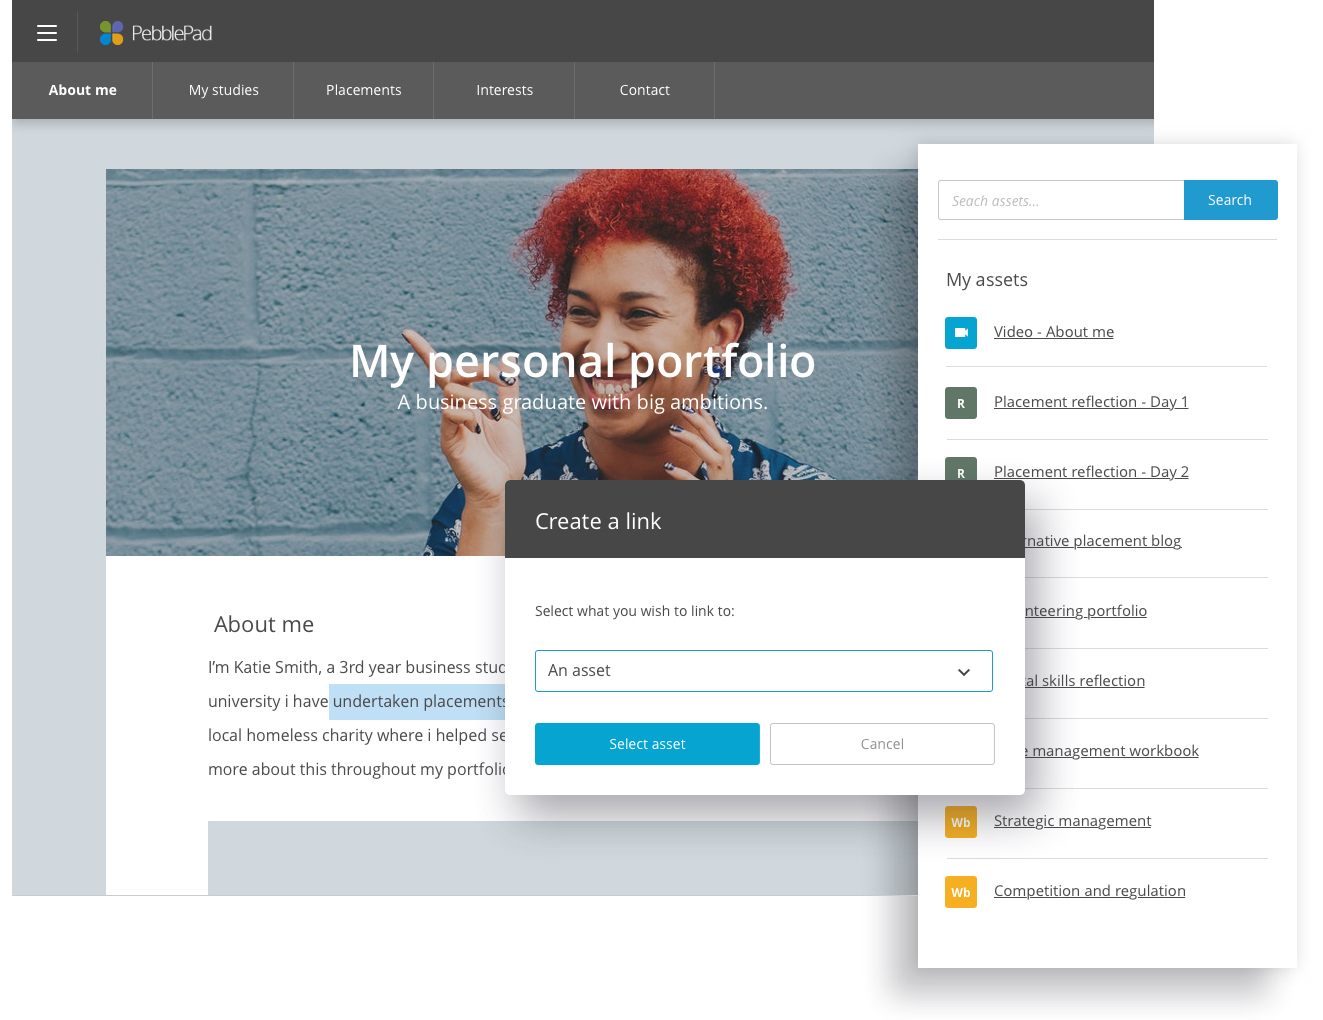 The image shows an example eportfolio